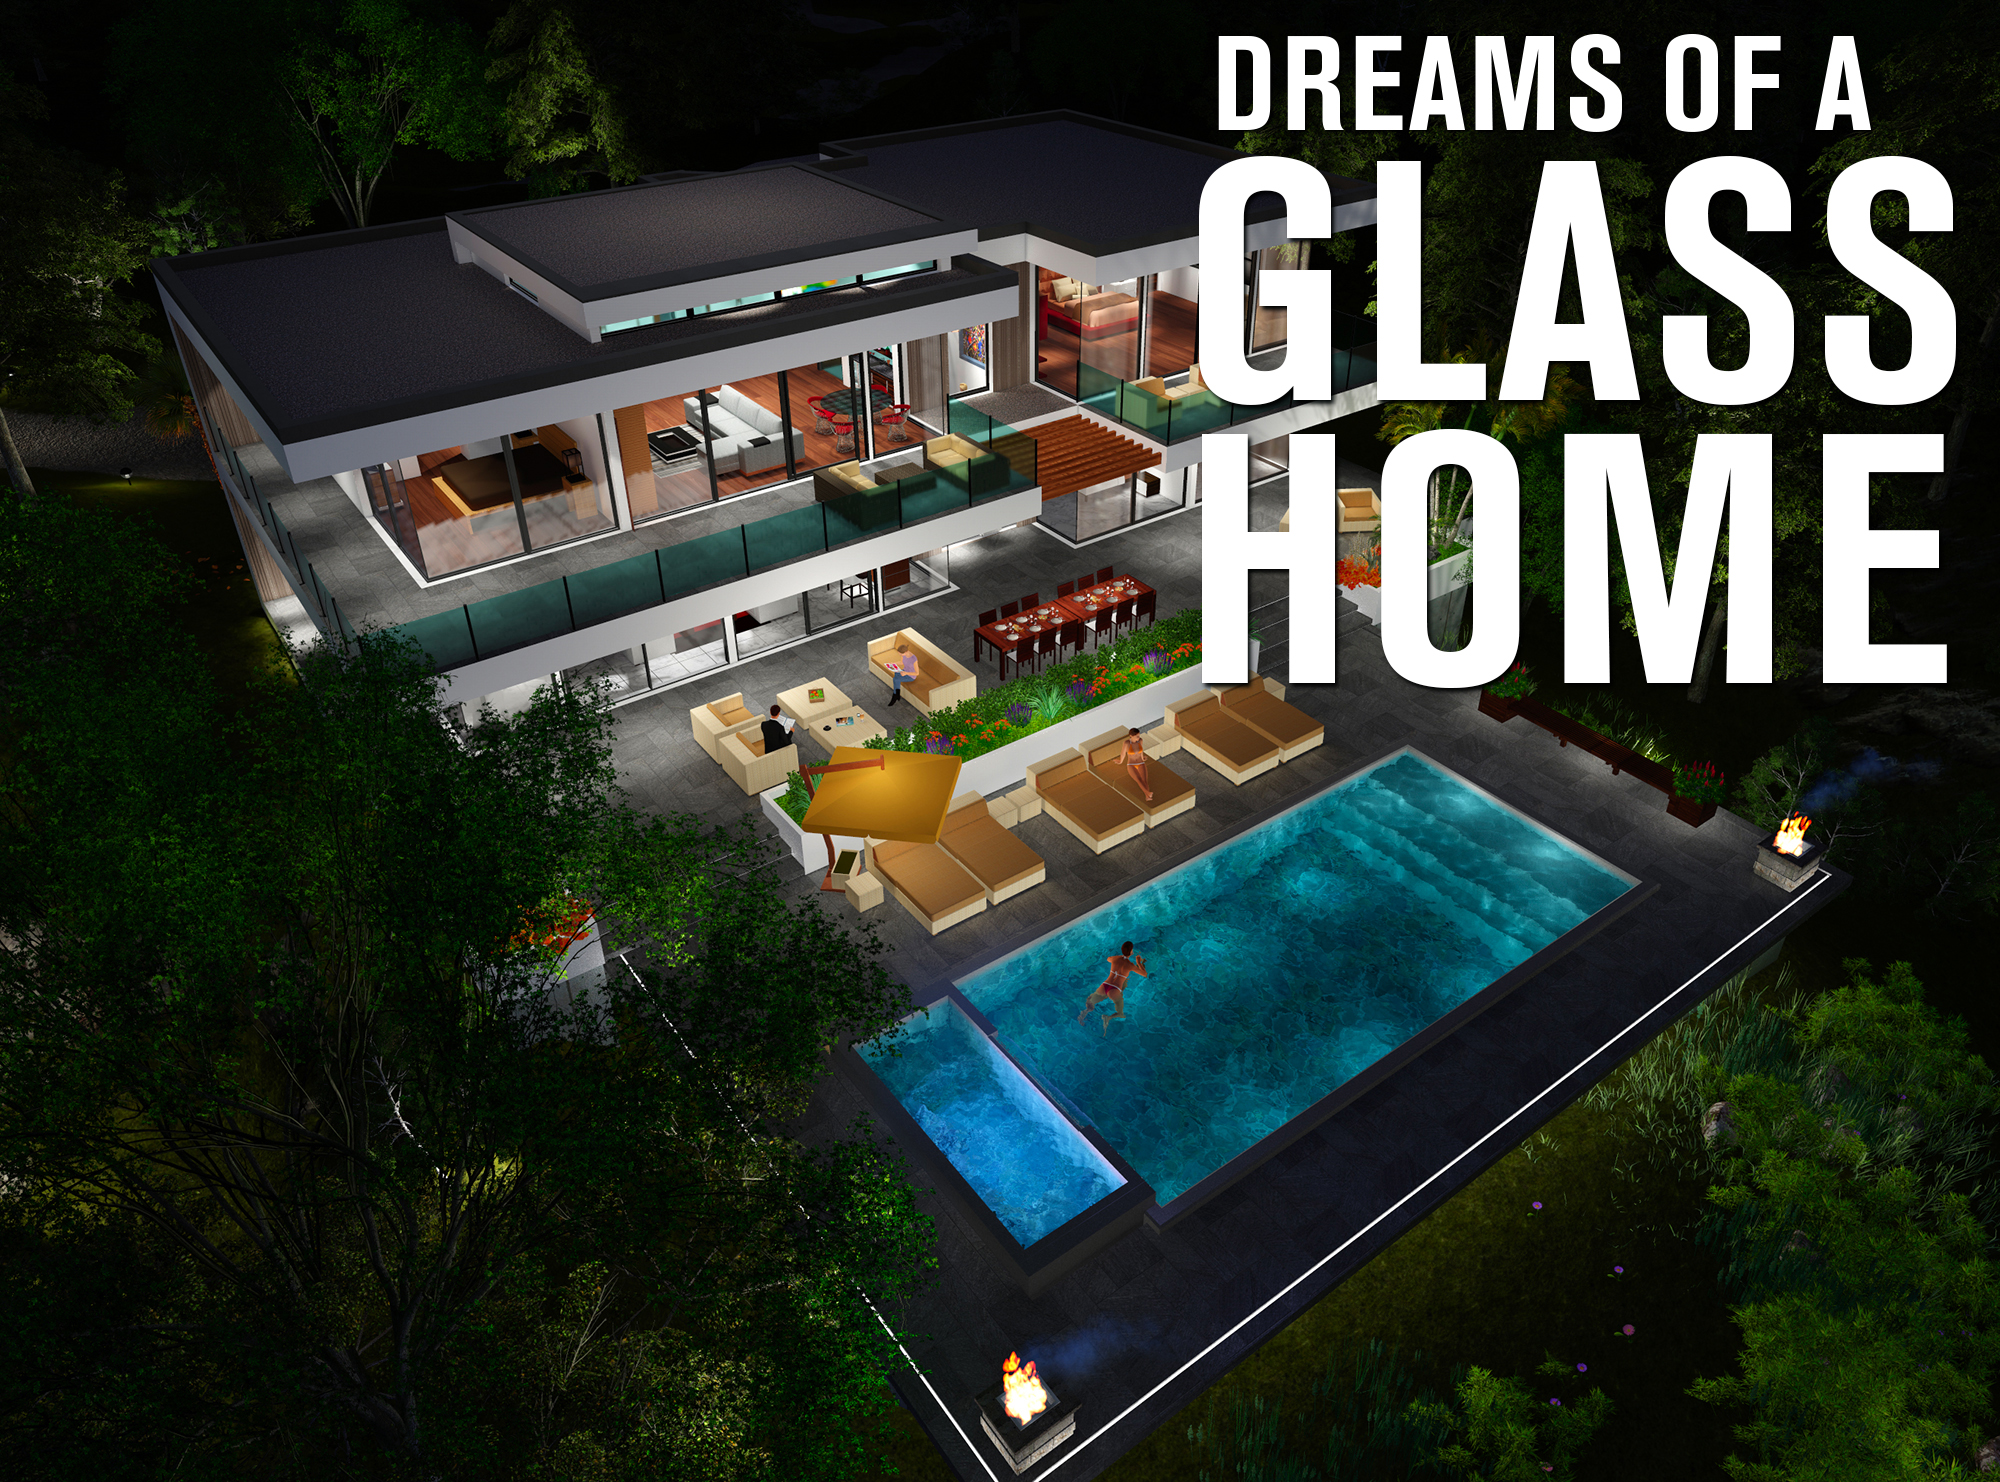 glass house dreams2 - Download Modern Small Glass House Designs Background